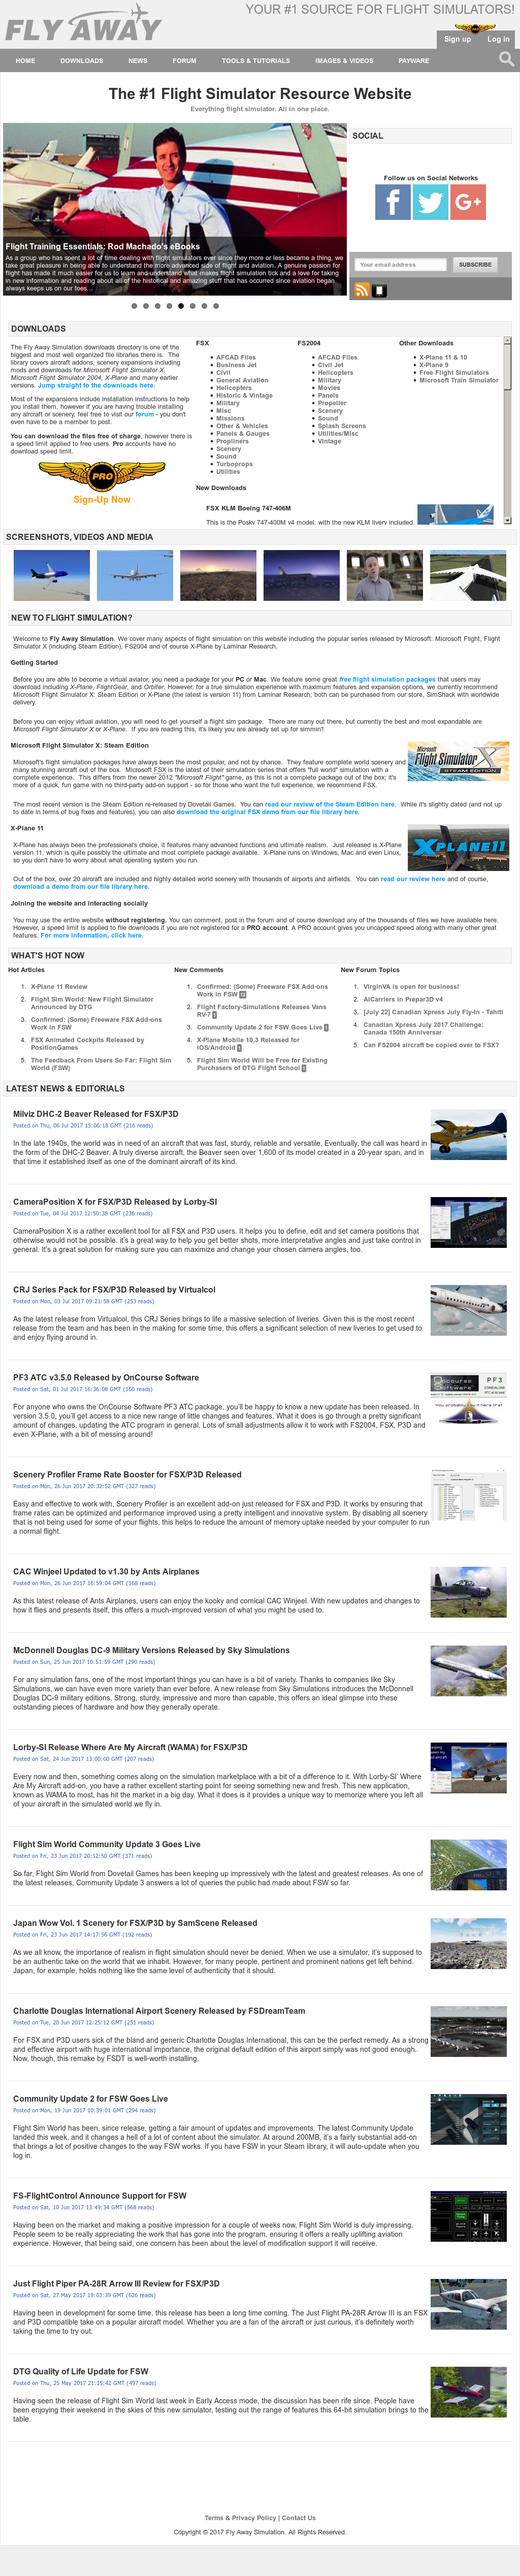 Owler Reports - Press Release: Fly Away Simulation : Fly Away